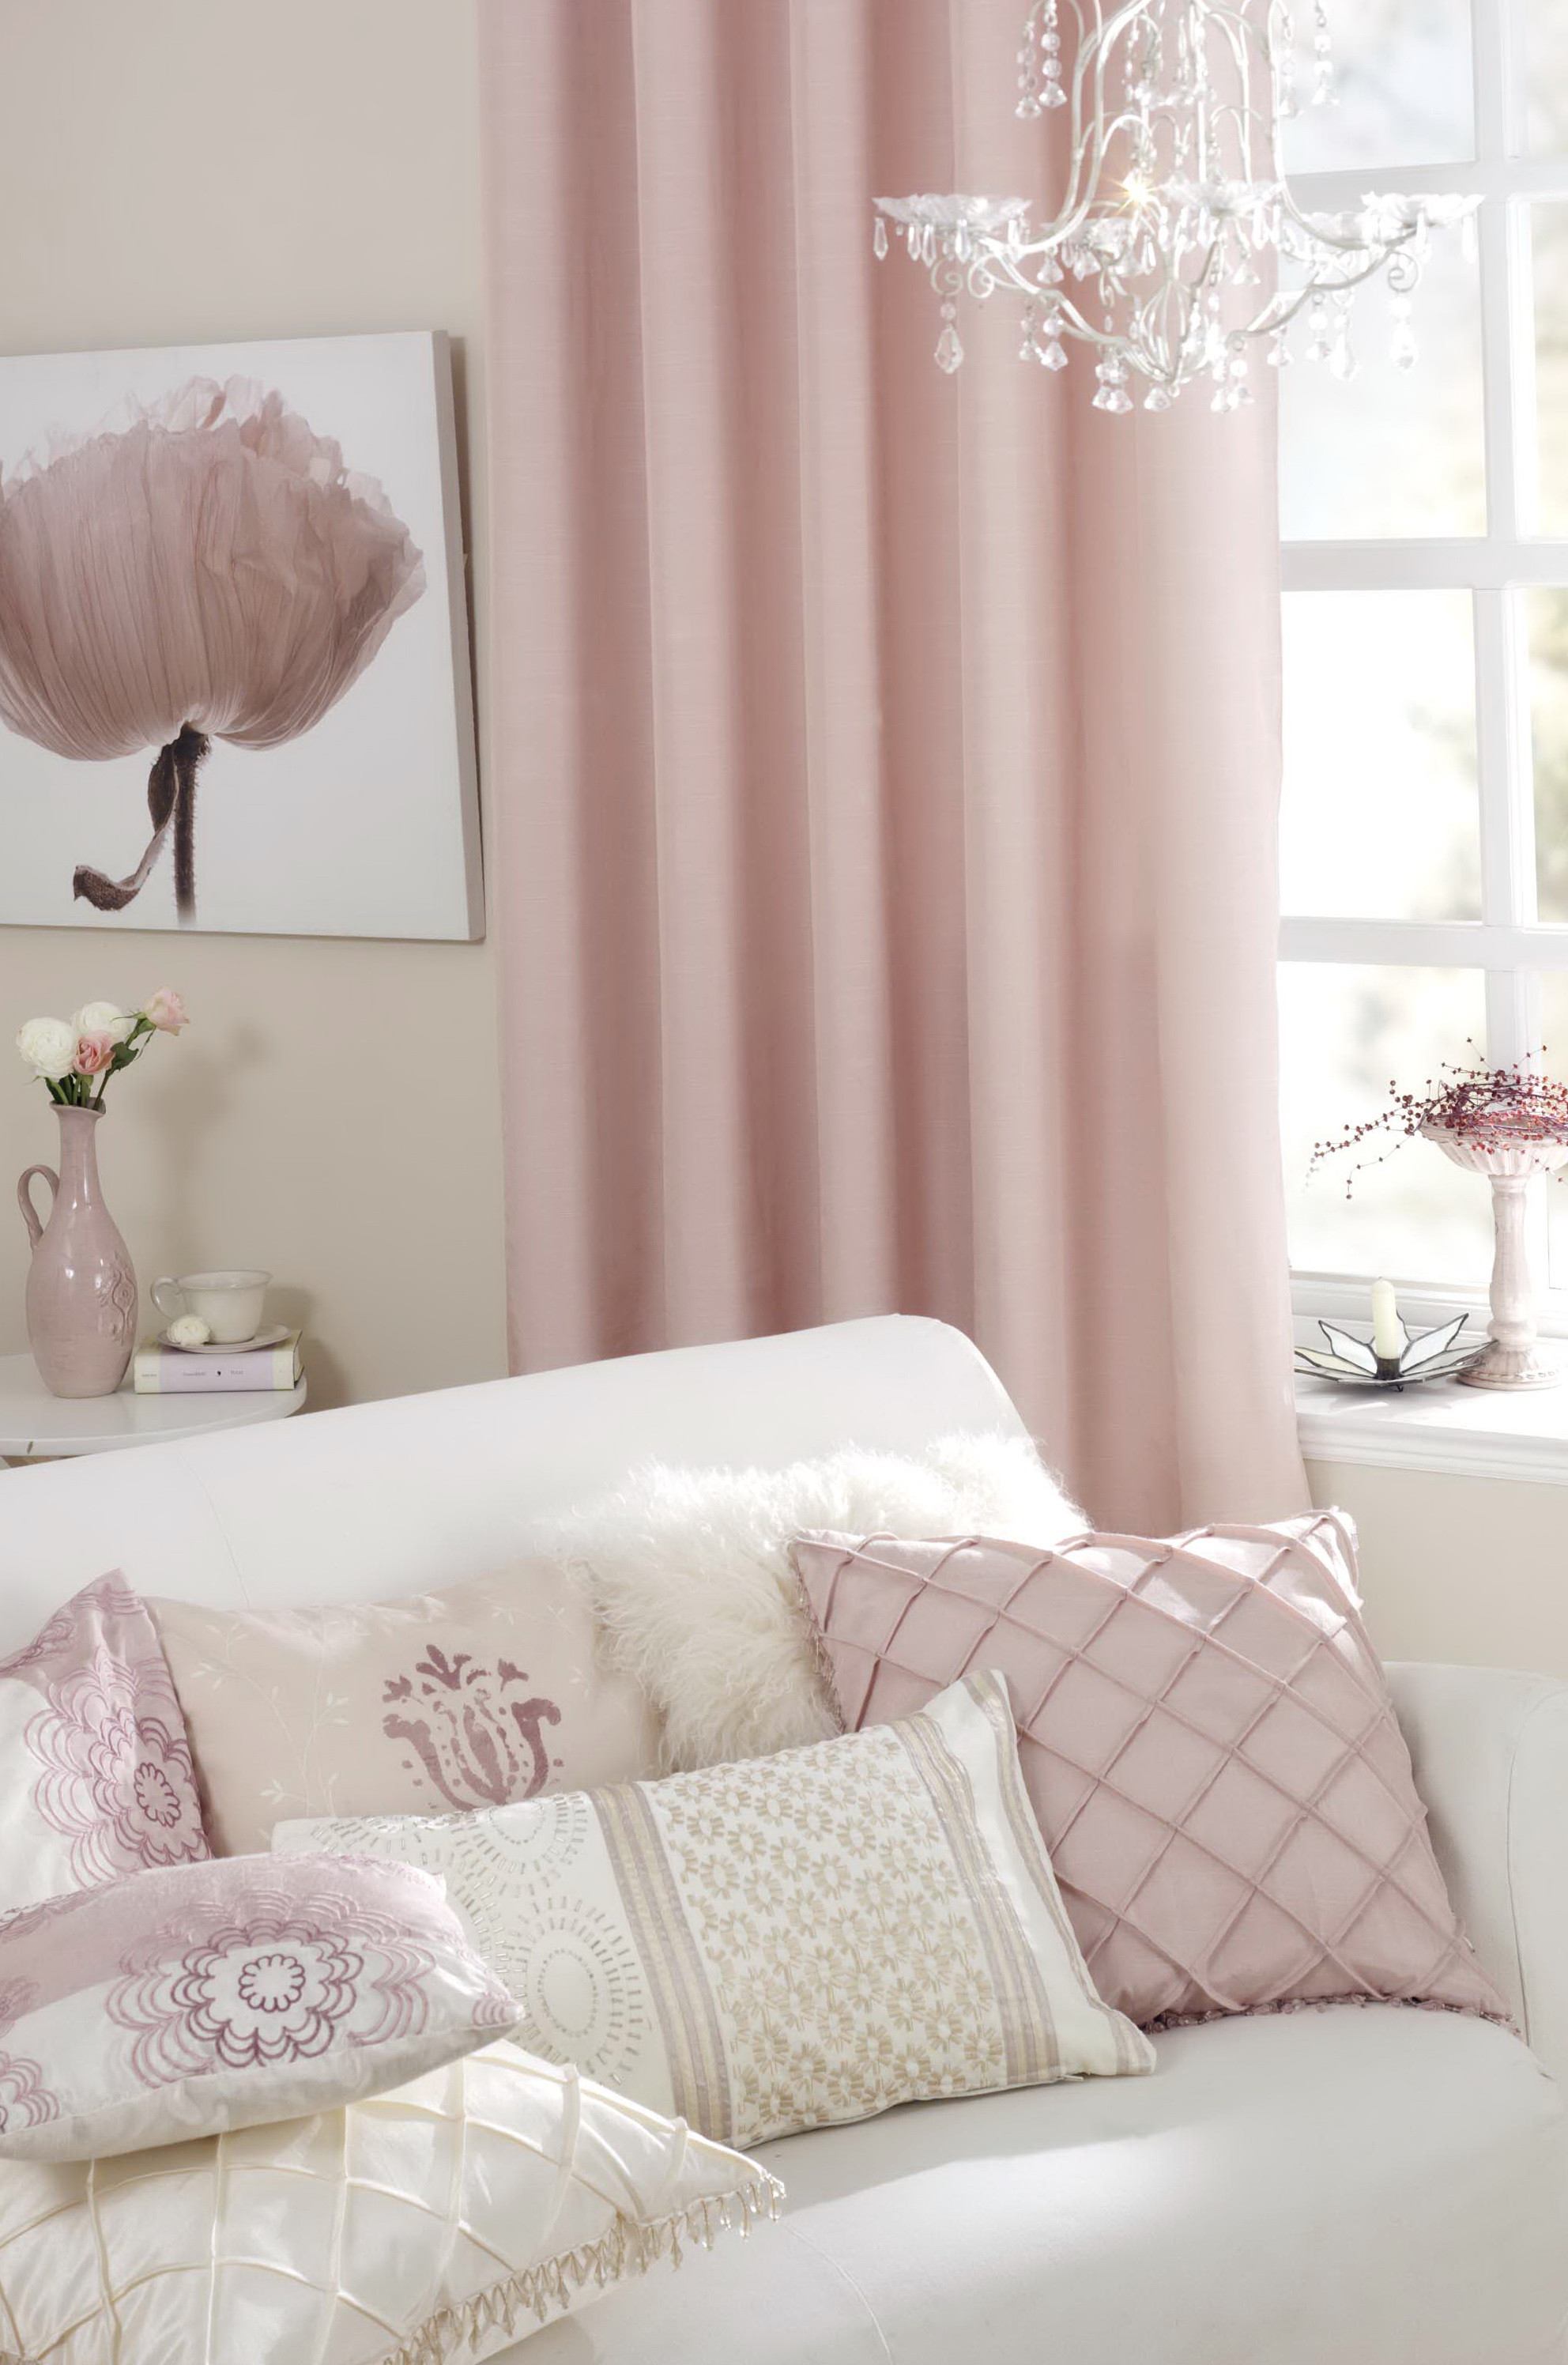 Where To Buy Curtains In Store